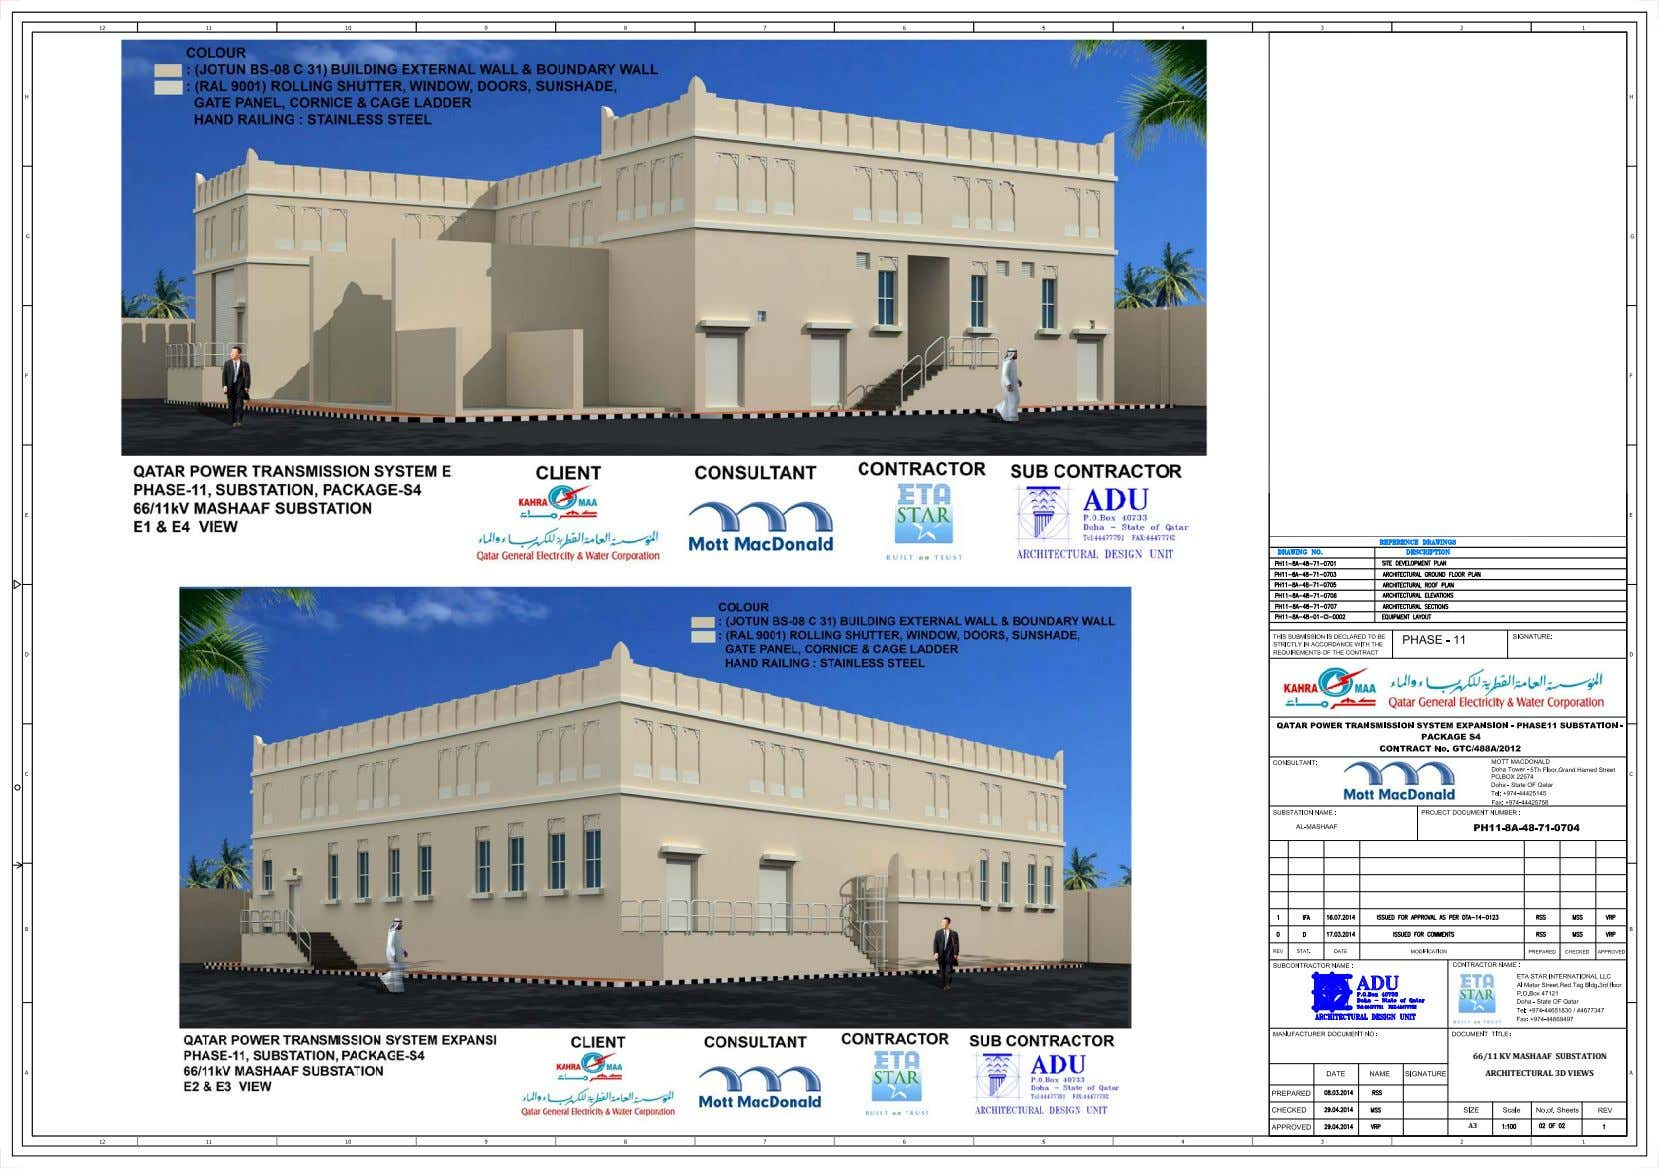 66/11 KV MASHAAF SUBSTATION ARCHITECTURAL 3D VIEWS A3